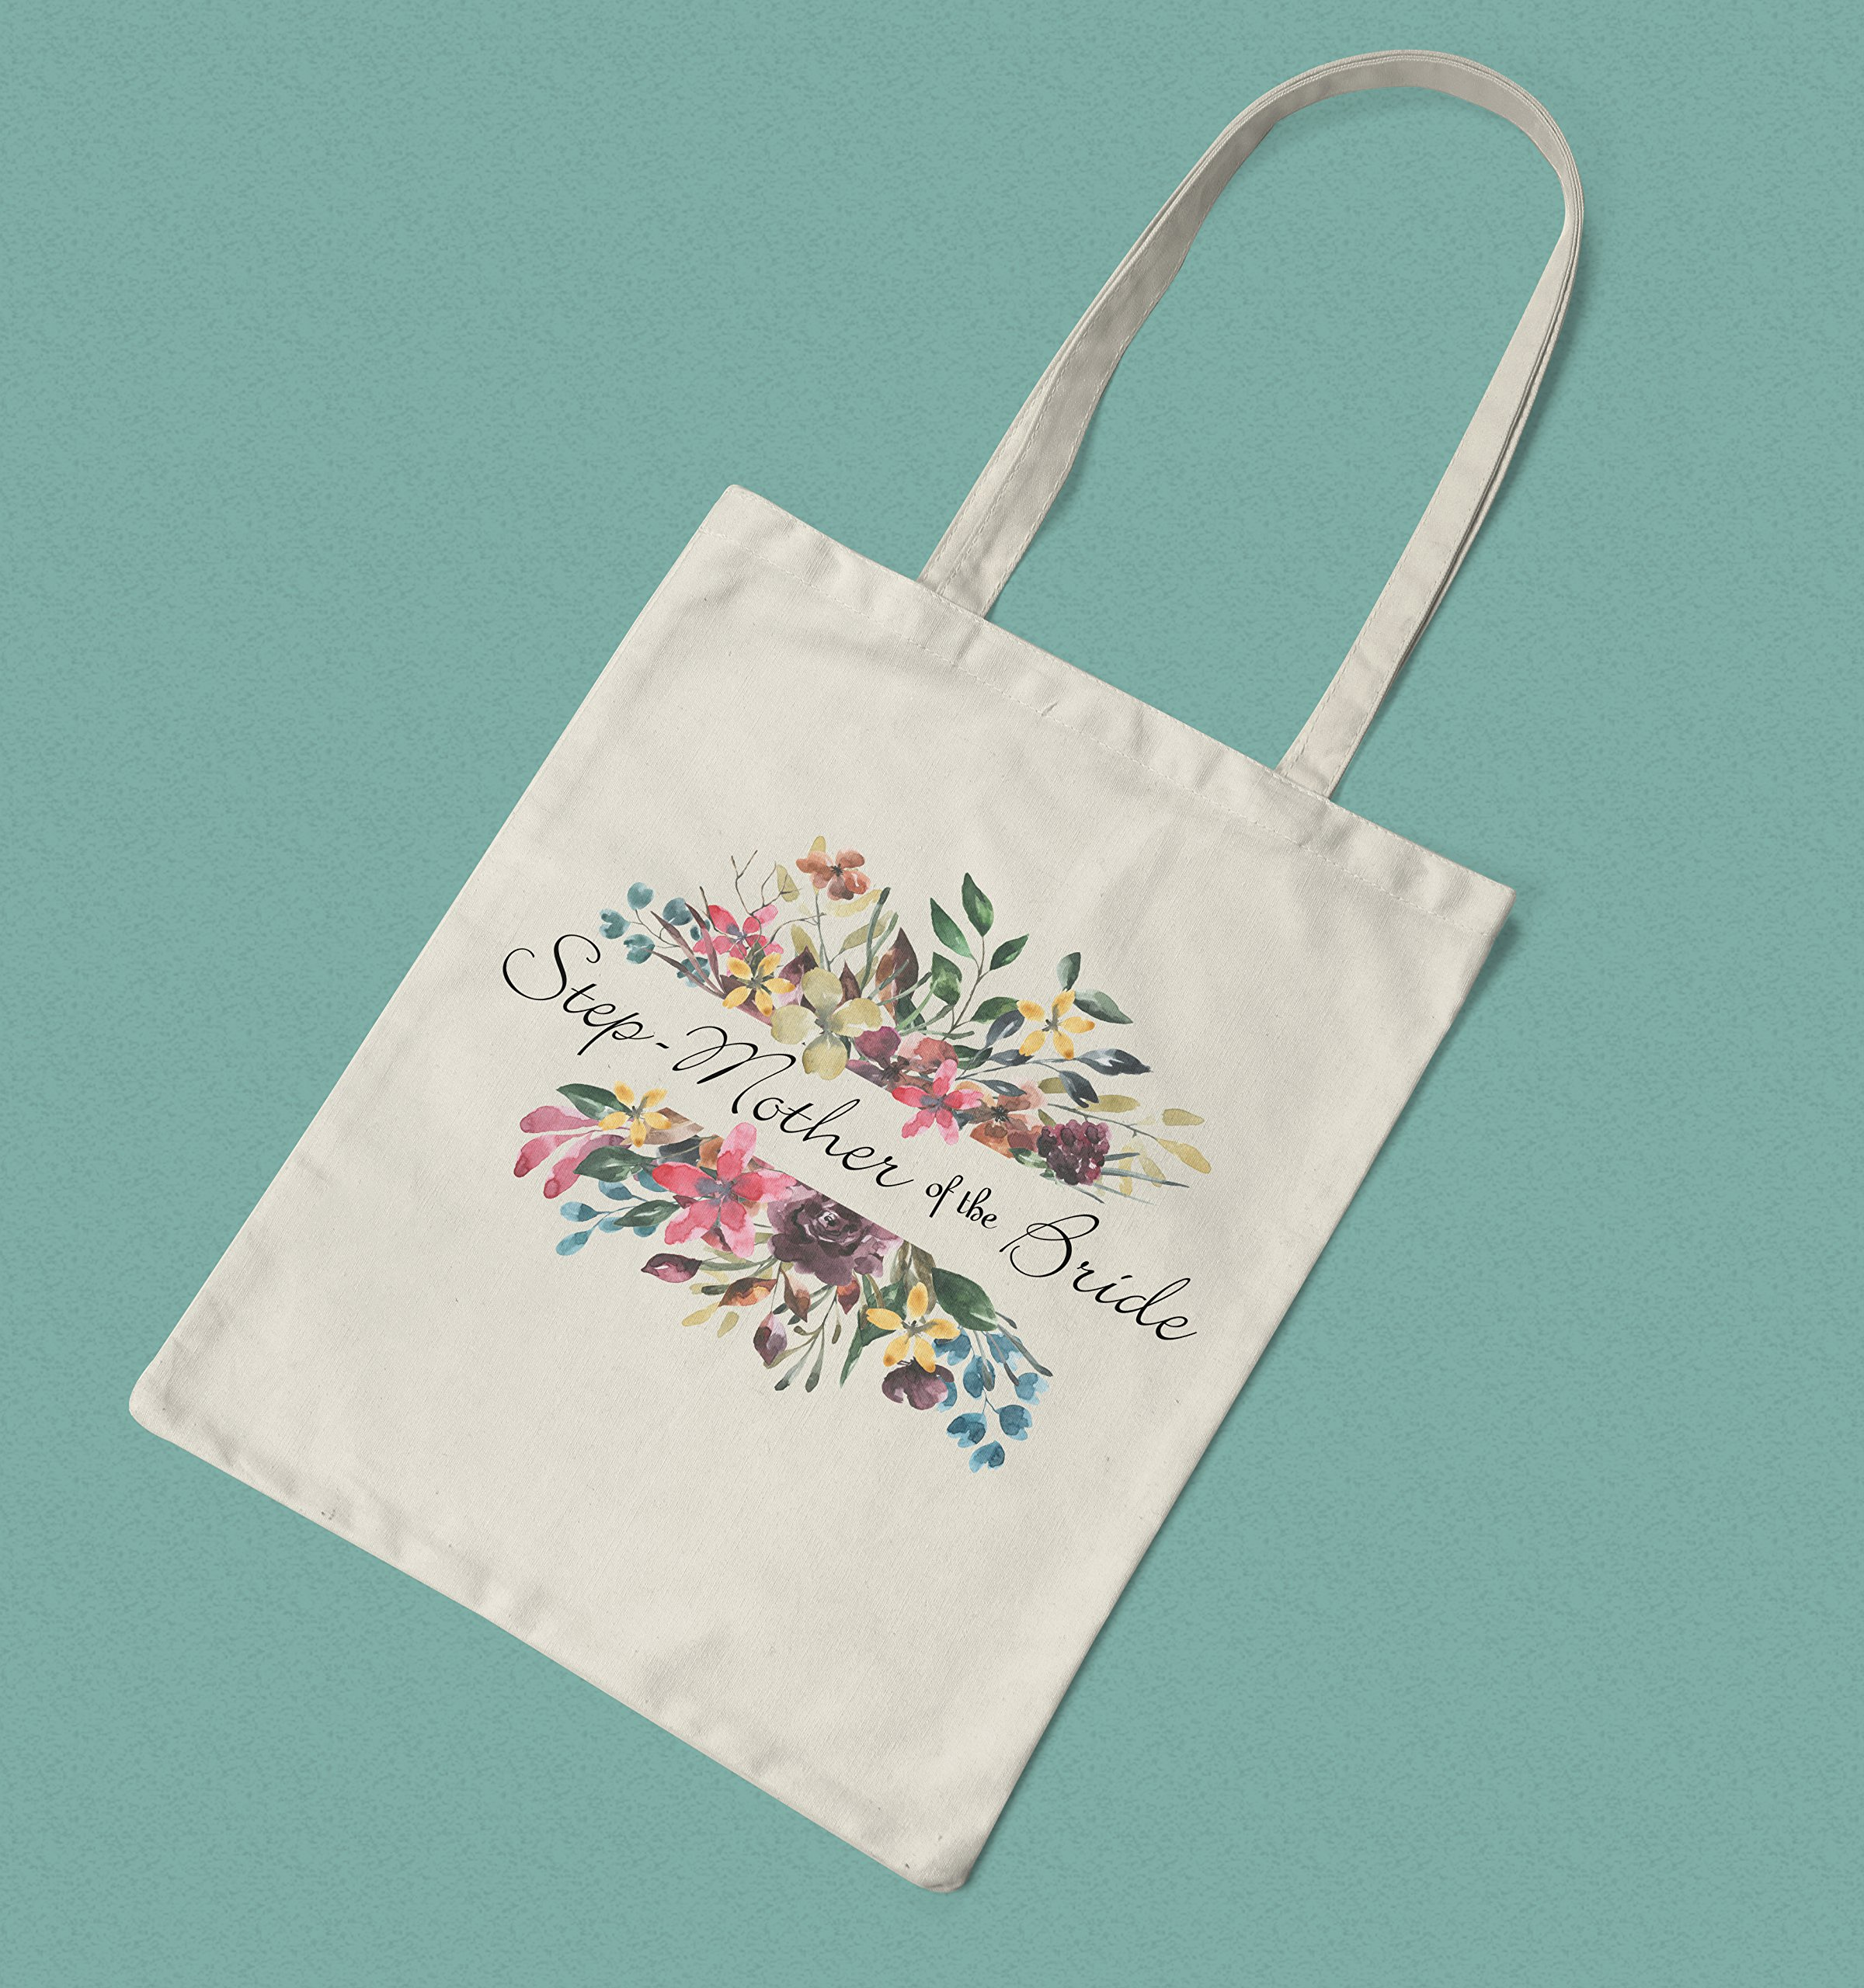 Floral Step-Mother of the Bride Printed Cotton Shopping Bag - handmade-bags